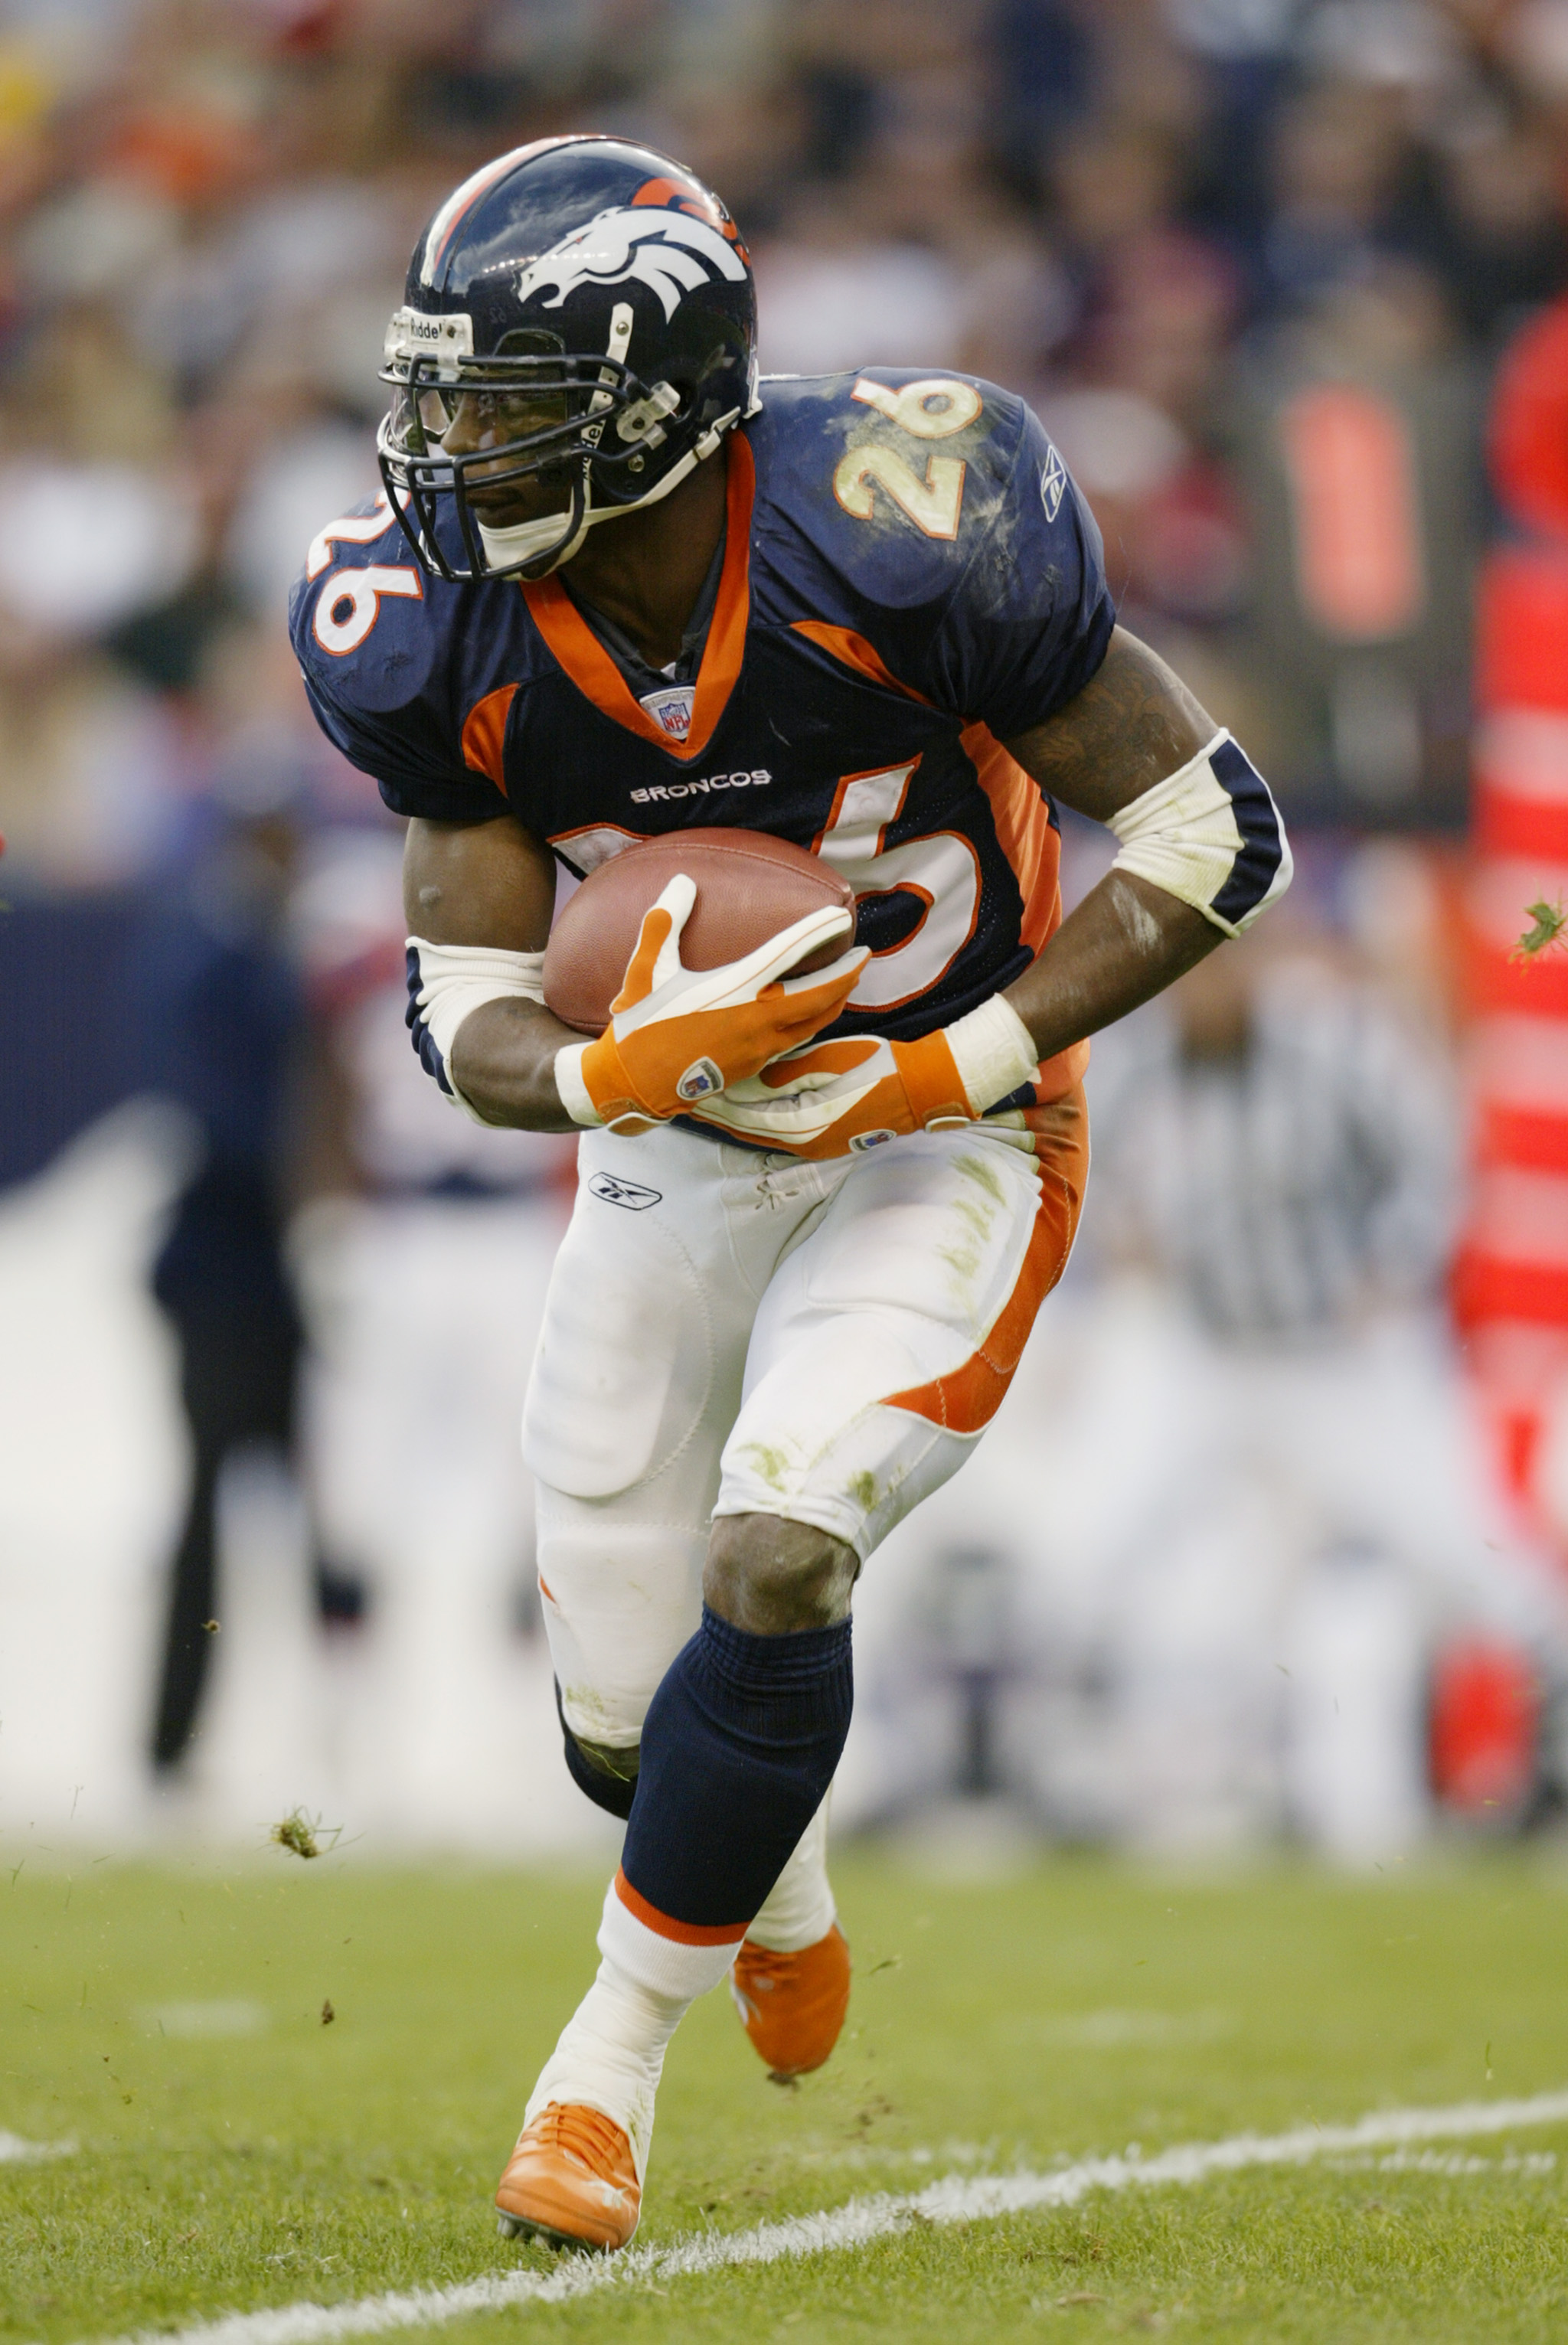 DENVER - DECEMBER 15:  Clinton Portis #26 of the Denver Broncos runs the ball against the Kansas City Chiefs during the NFL game at Invesco Field at Mile High on December 15, 2002 in Denver, Colorado. The Broncos won 31-24. (Photo by Brian Bahr/Getty Imag